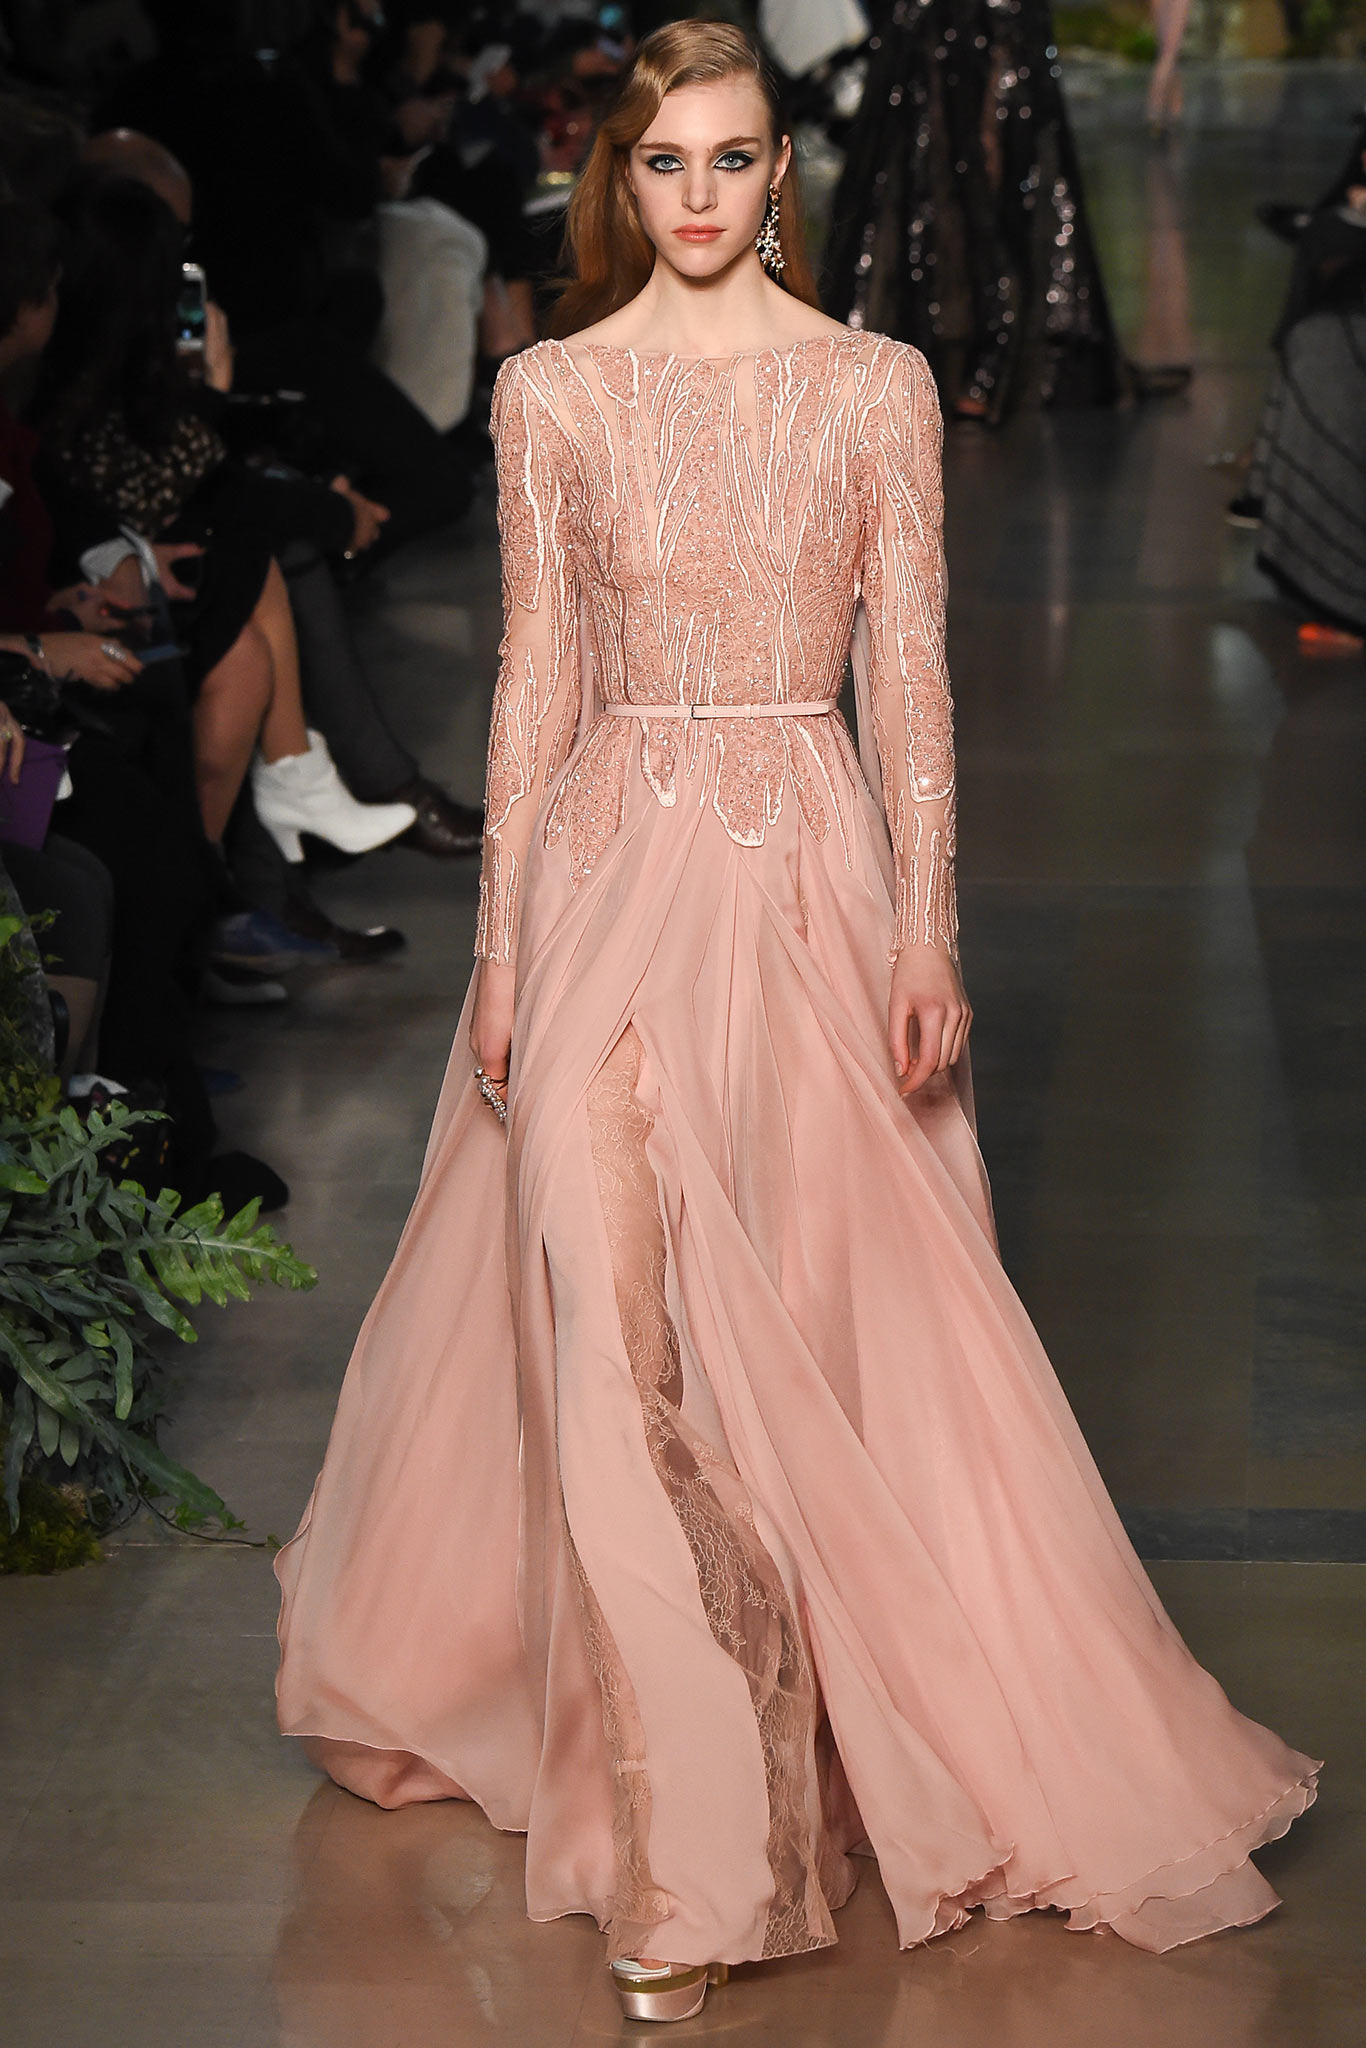 RUNWAY: Elie Saab Spring 2015 Couture Collection